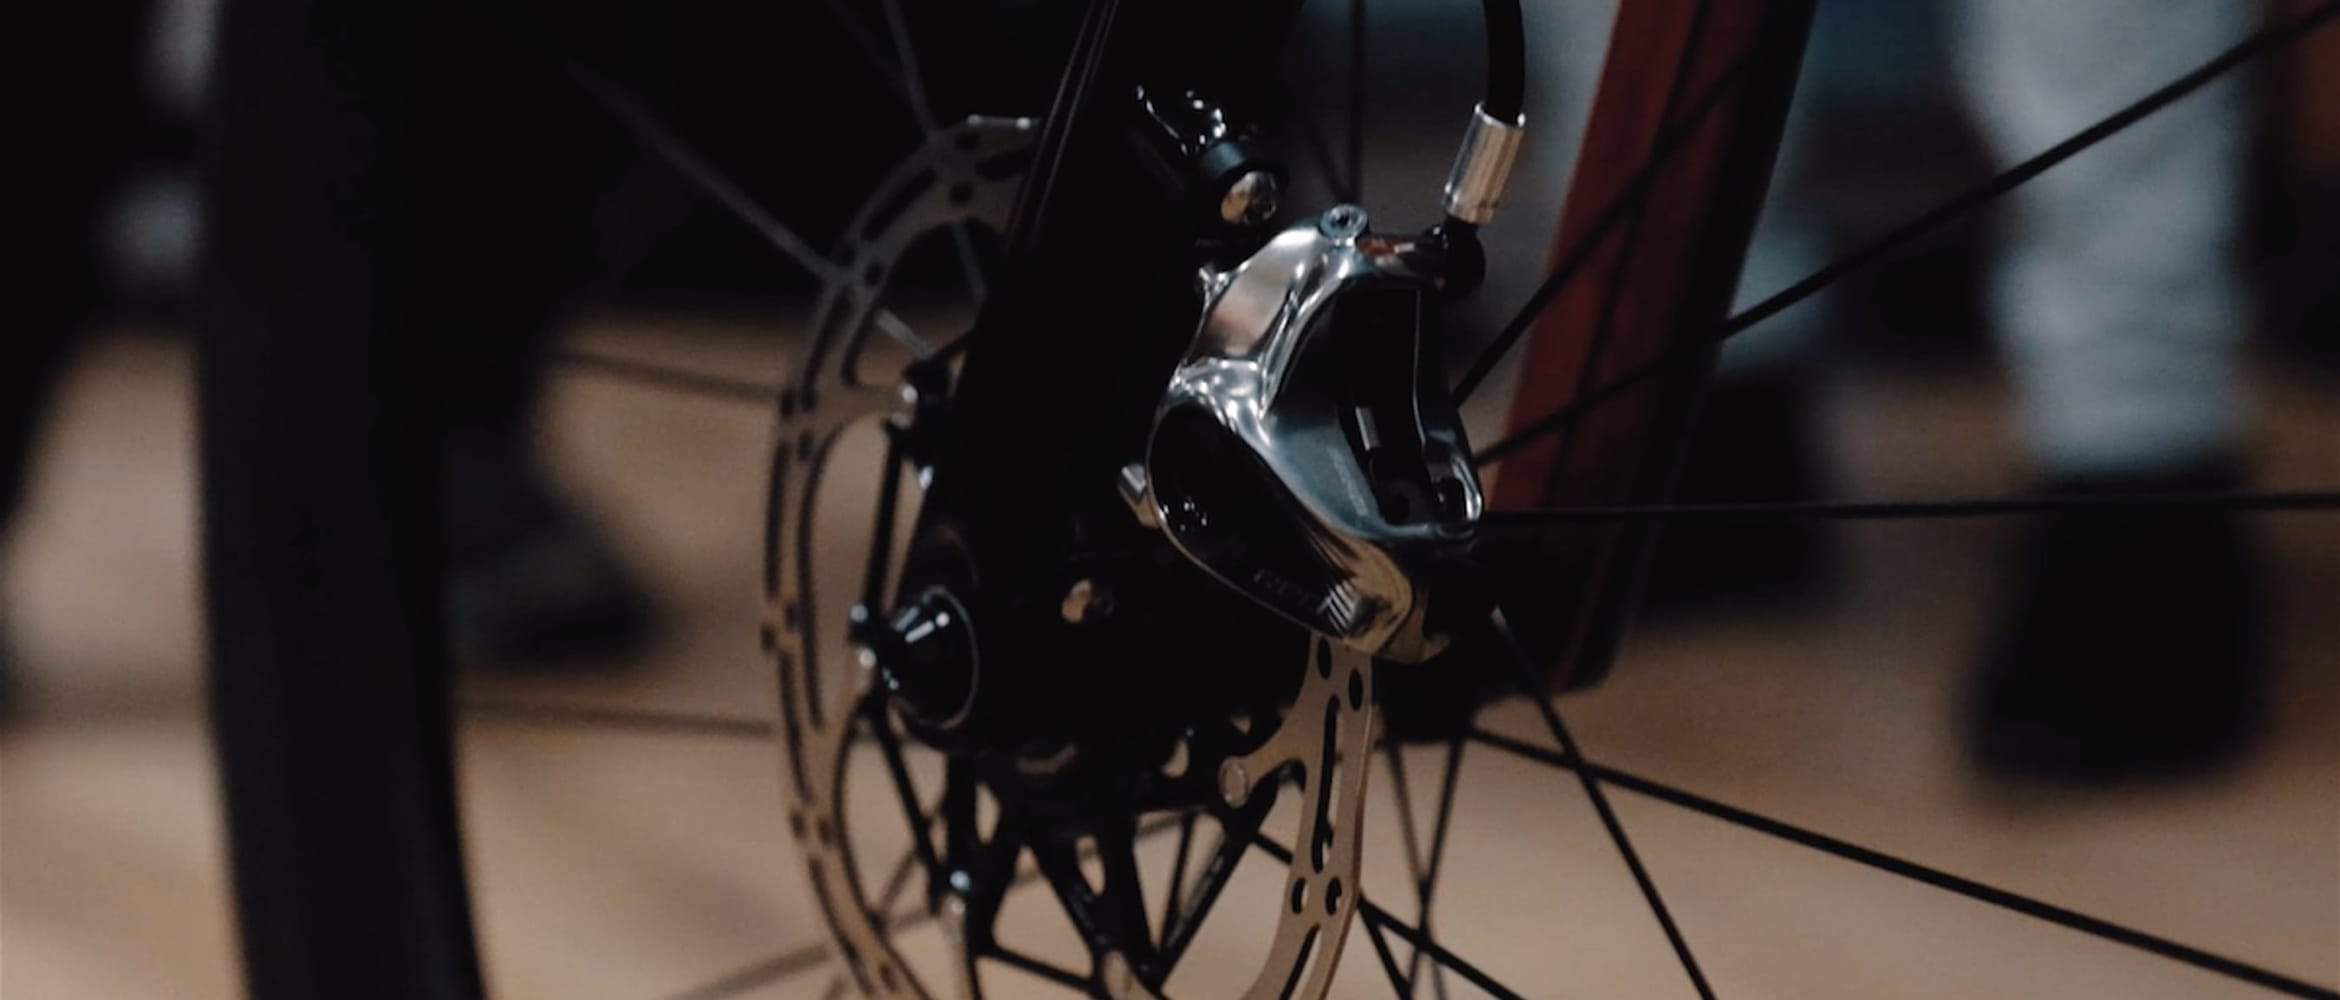 Close-up of bicycle disc brake with people's feet in the background